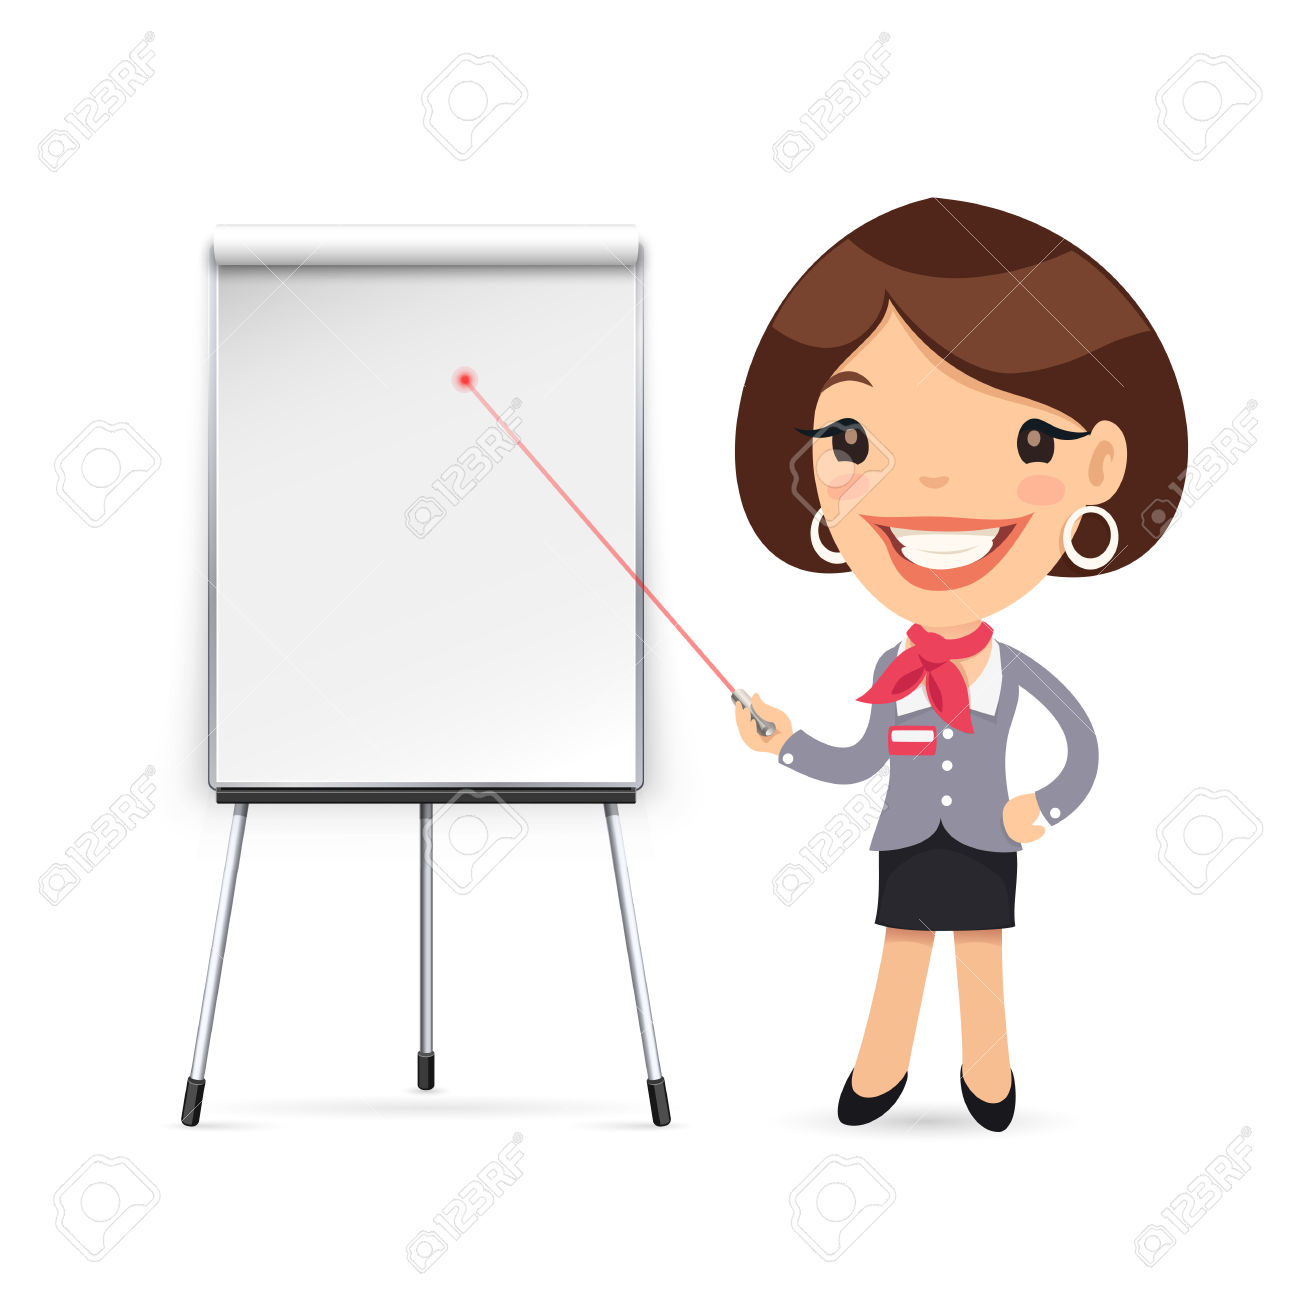 1,826 Female Professor Stock Vector Illustration And Royalty Free.